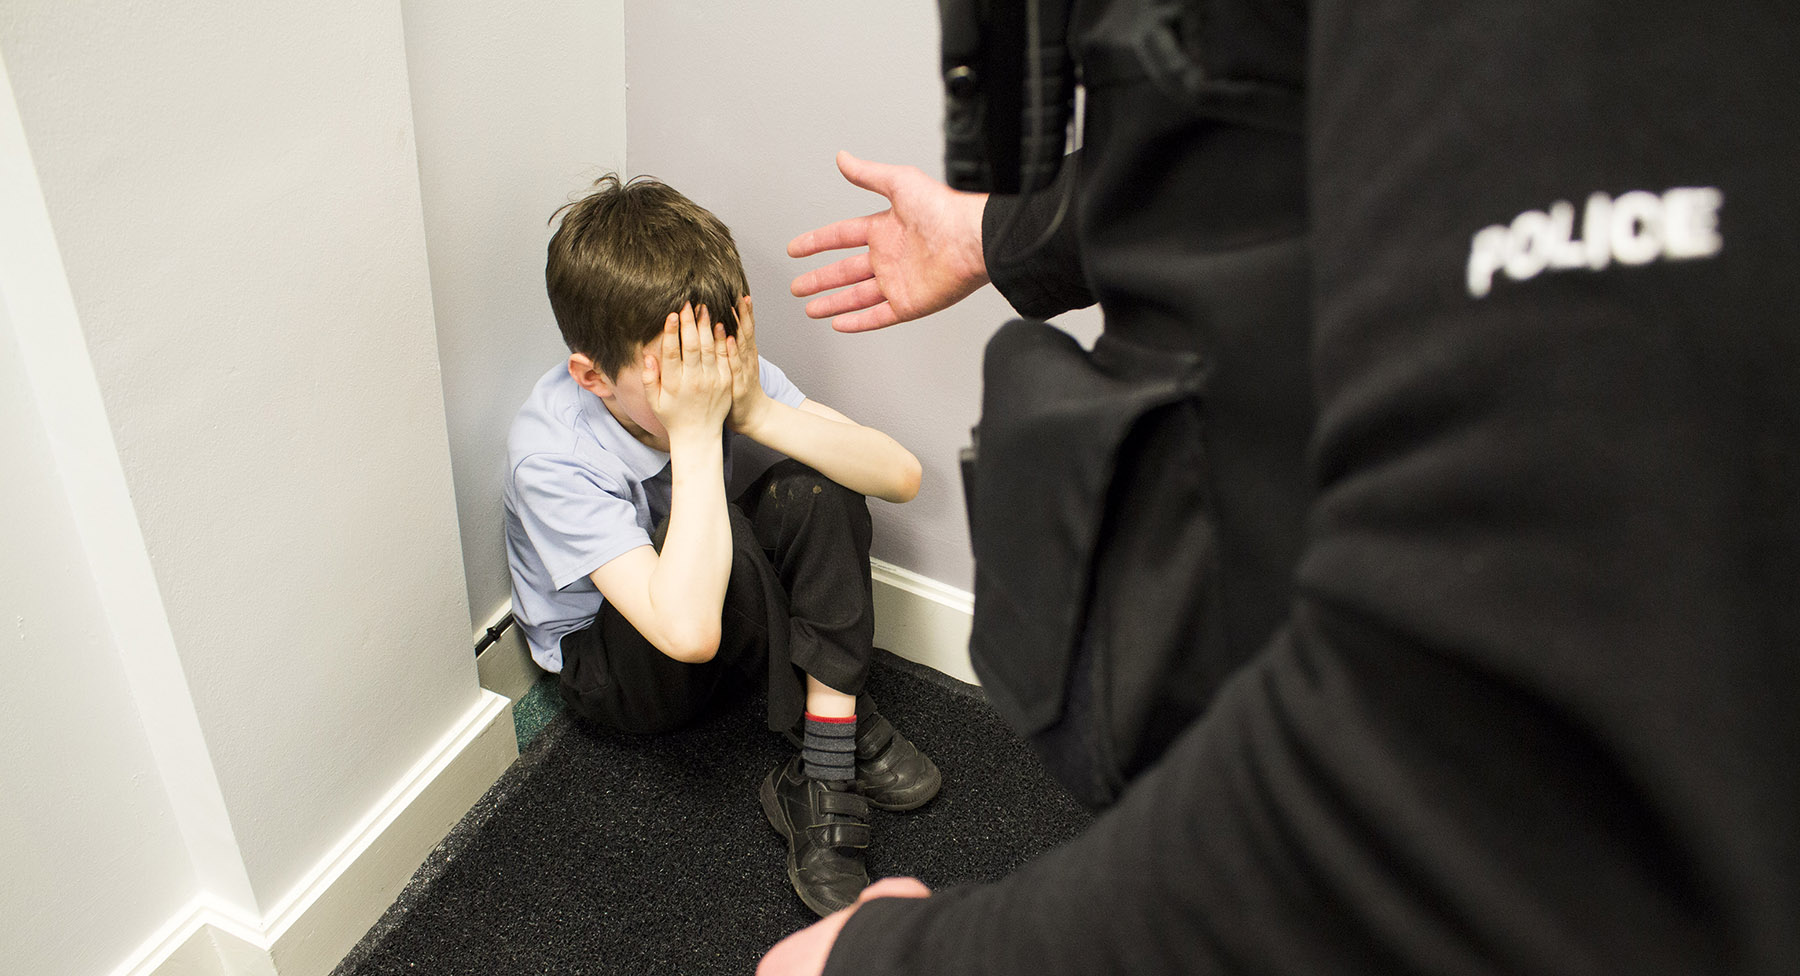 A boy sat crossed legged in the corner with a police with an outstretched arm